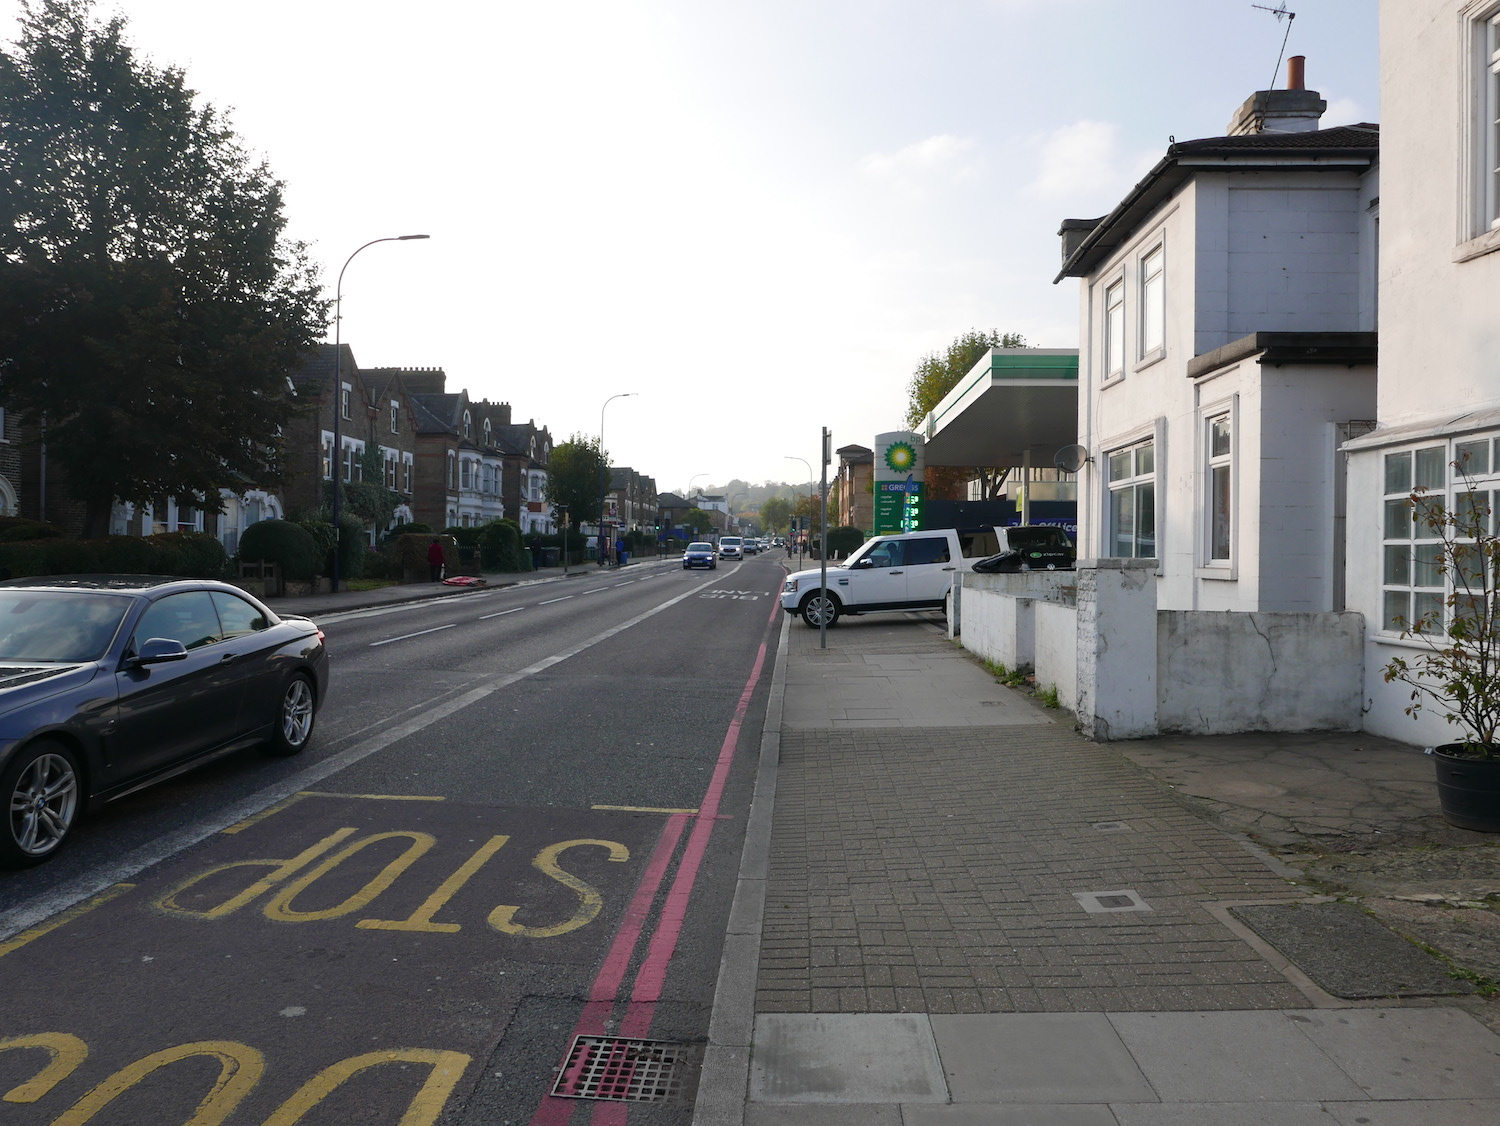 View of a petrol station on the South Circular, London